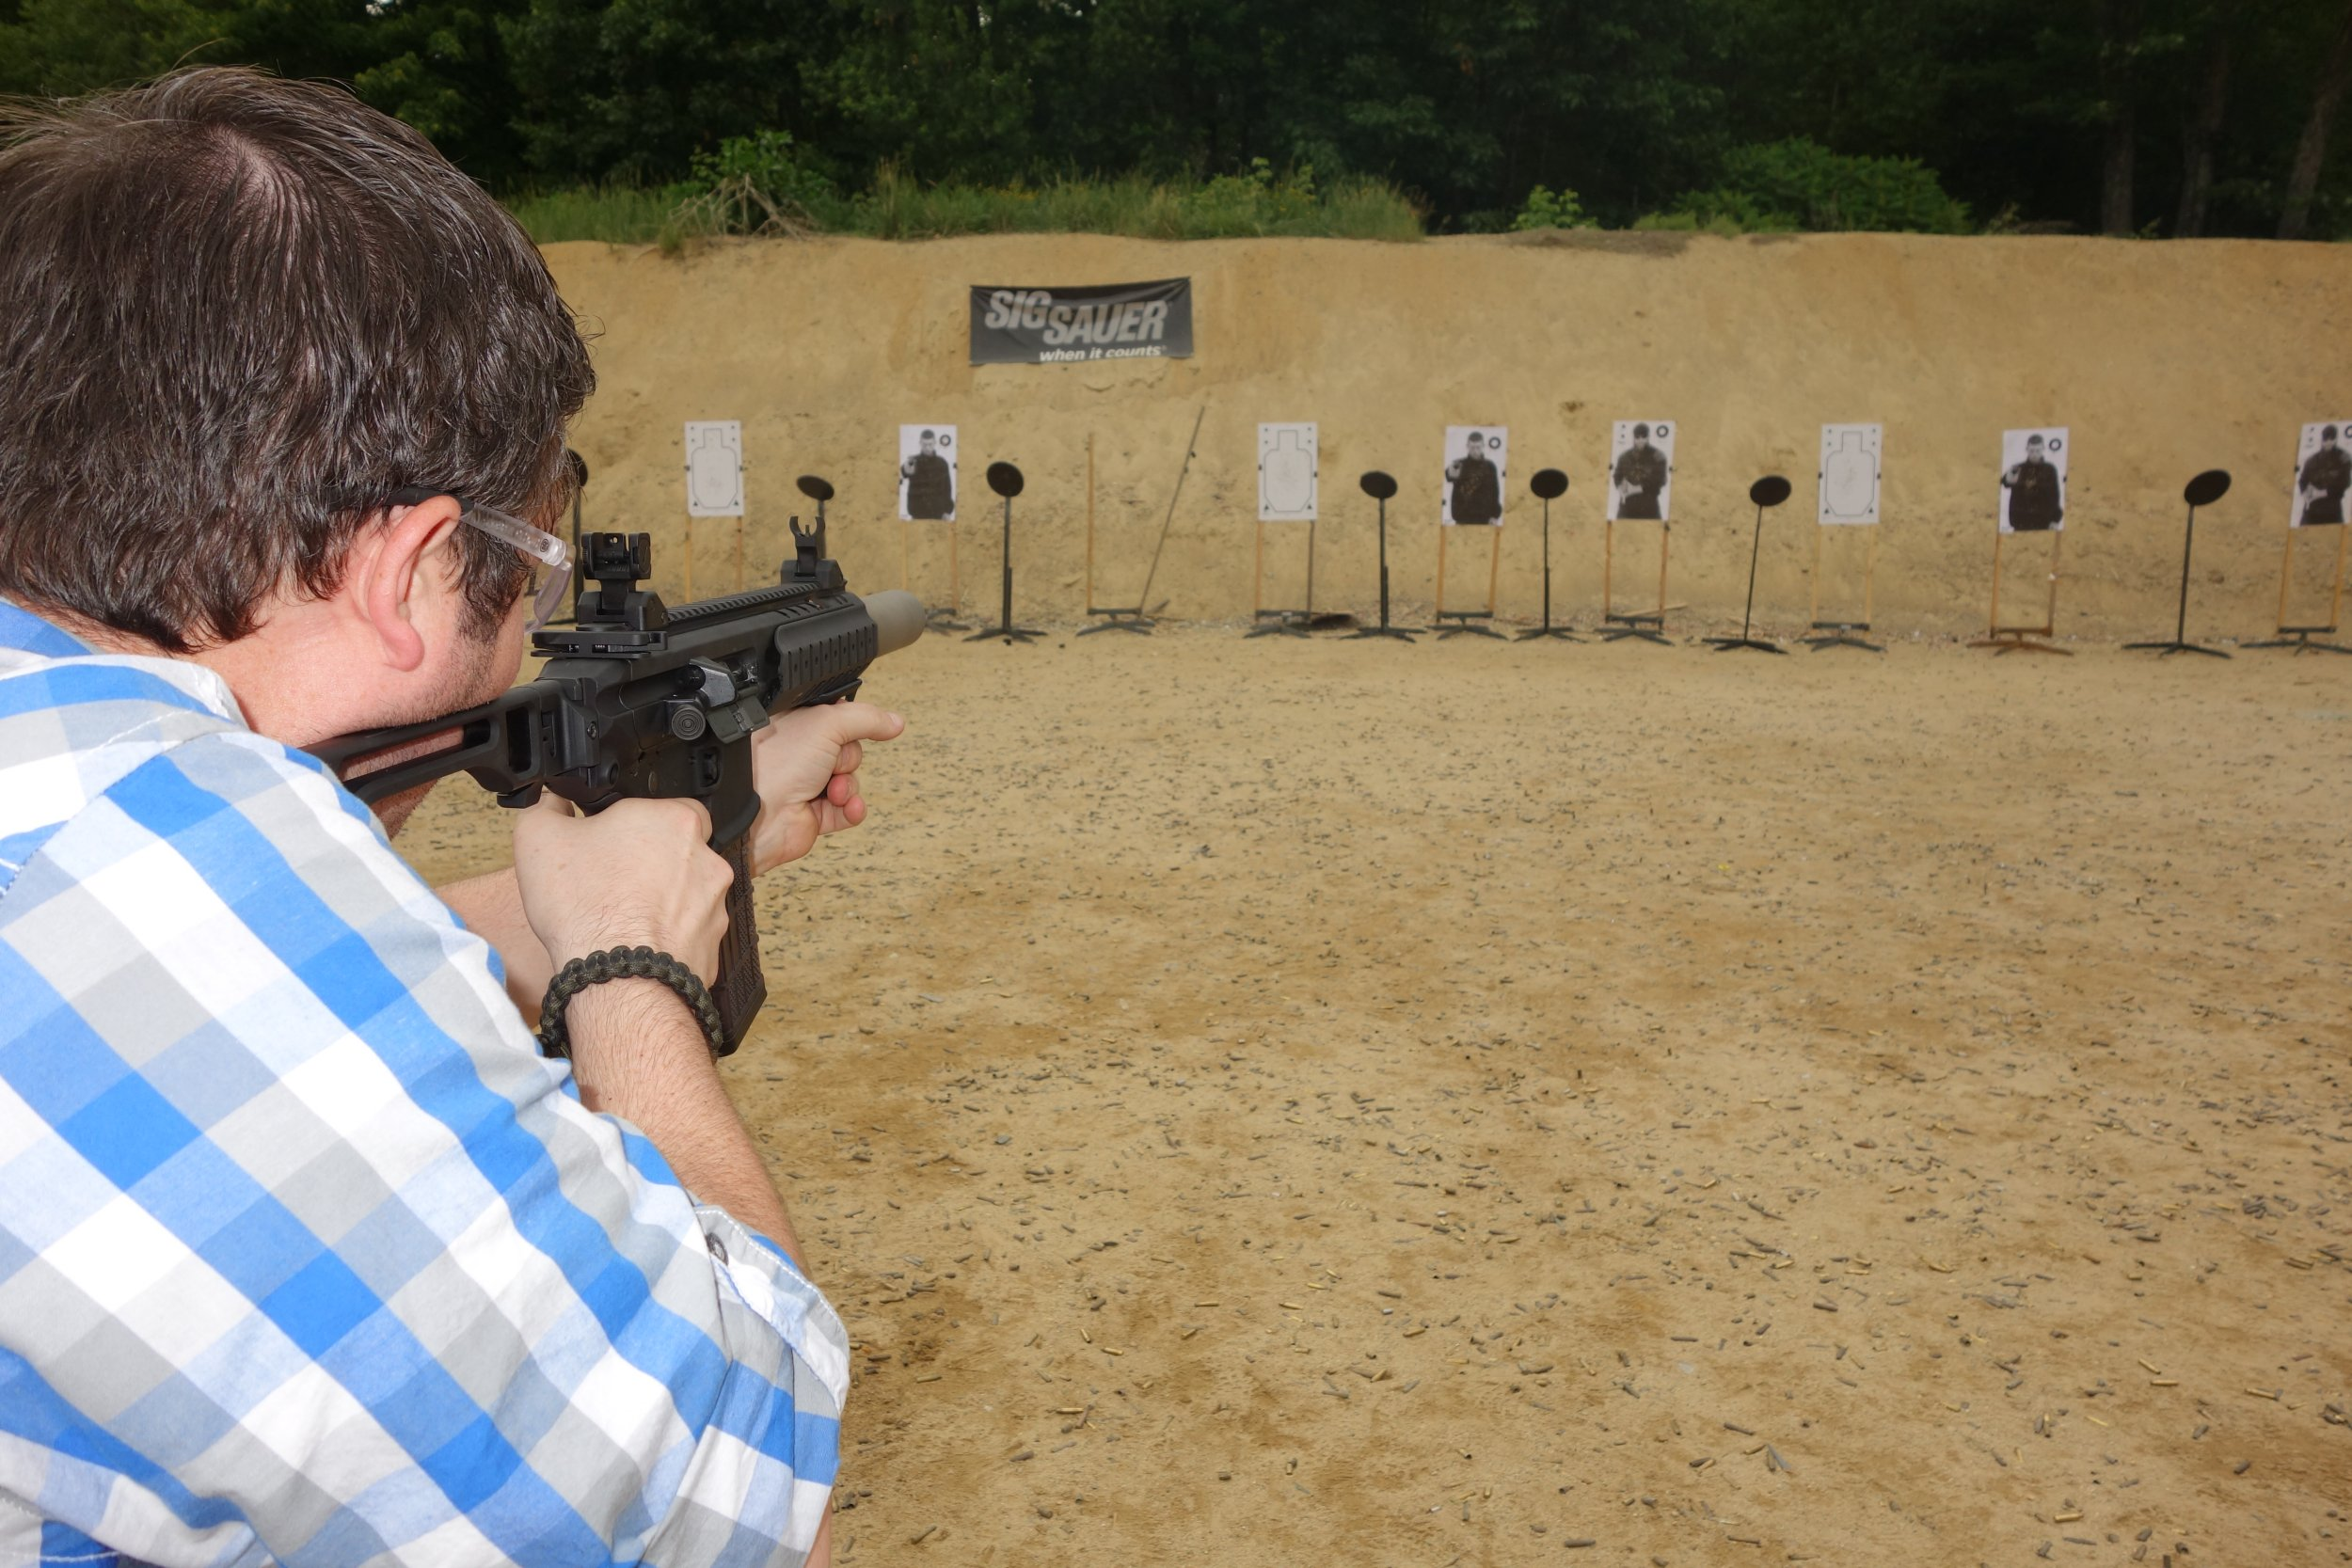 SIG SAUER SIG MCX Multi Caliber AR Assault Rifle Carbine SBR 300 Blackout 300BLK Suppressed SIG SAUER Academy New Media Writers Event 2014 David Crane DefenseReview.com DR 8 SIG MCX LVAW (Low Visibility Assault Weapon) Black Mamba Suppressed 300 Blackout (300BLK) Piston AR Assault SBR/PDW (Short Barreled Rifle/Personal Defense Weapon) Fired on Full Auto and Semi Auto with Subsonic and Supersonic Ammo During SIG SAUER New Media Writers Event (Video!)